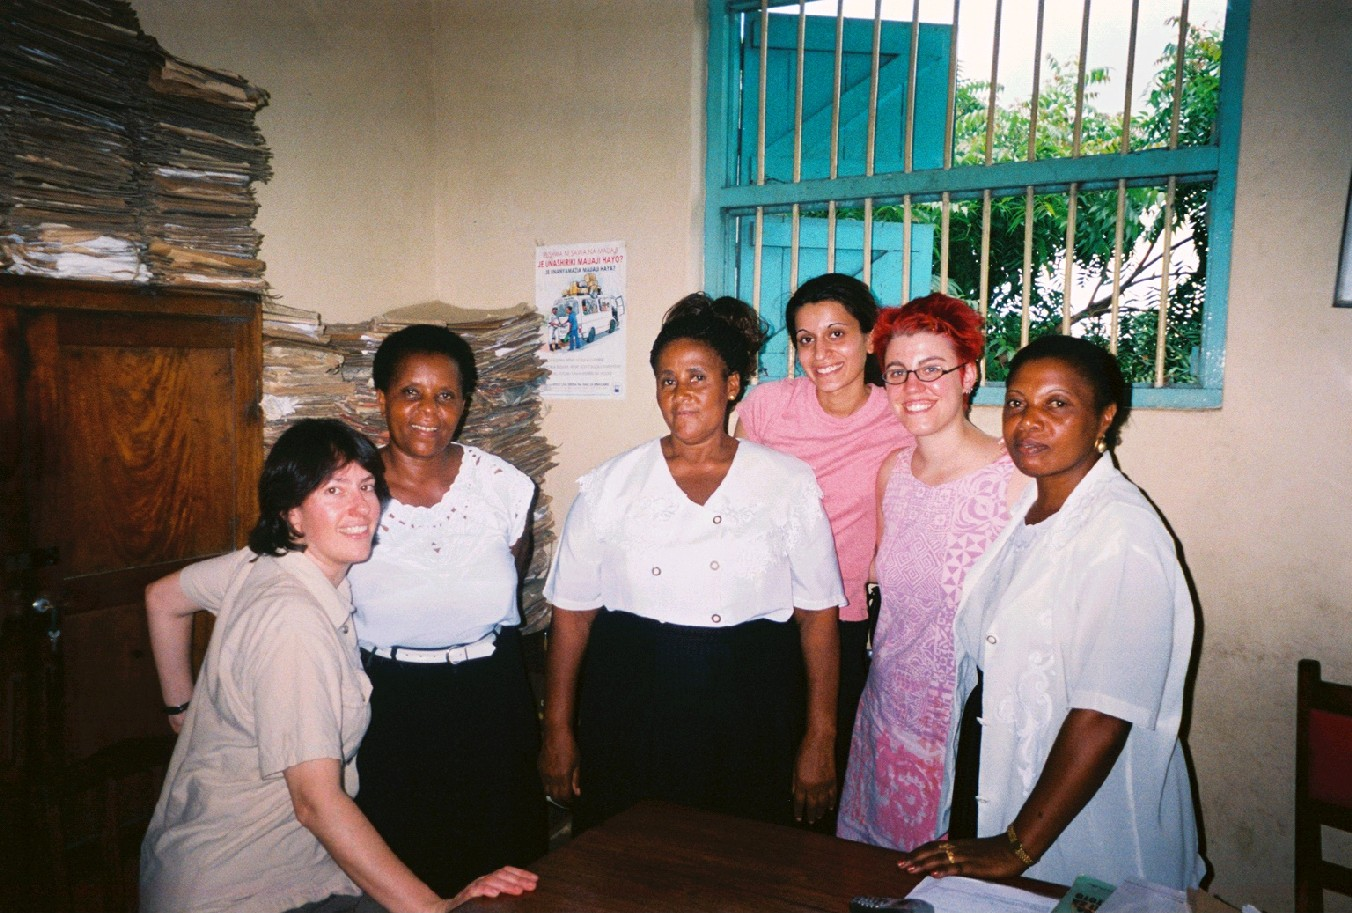 Two Student Advocates, Kalsoom Malik and Vanessa Brocato, standing with three other women in the Women's Legal Aid Centre office in Dar es Salaam.